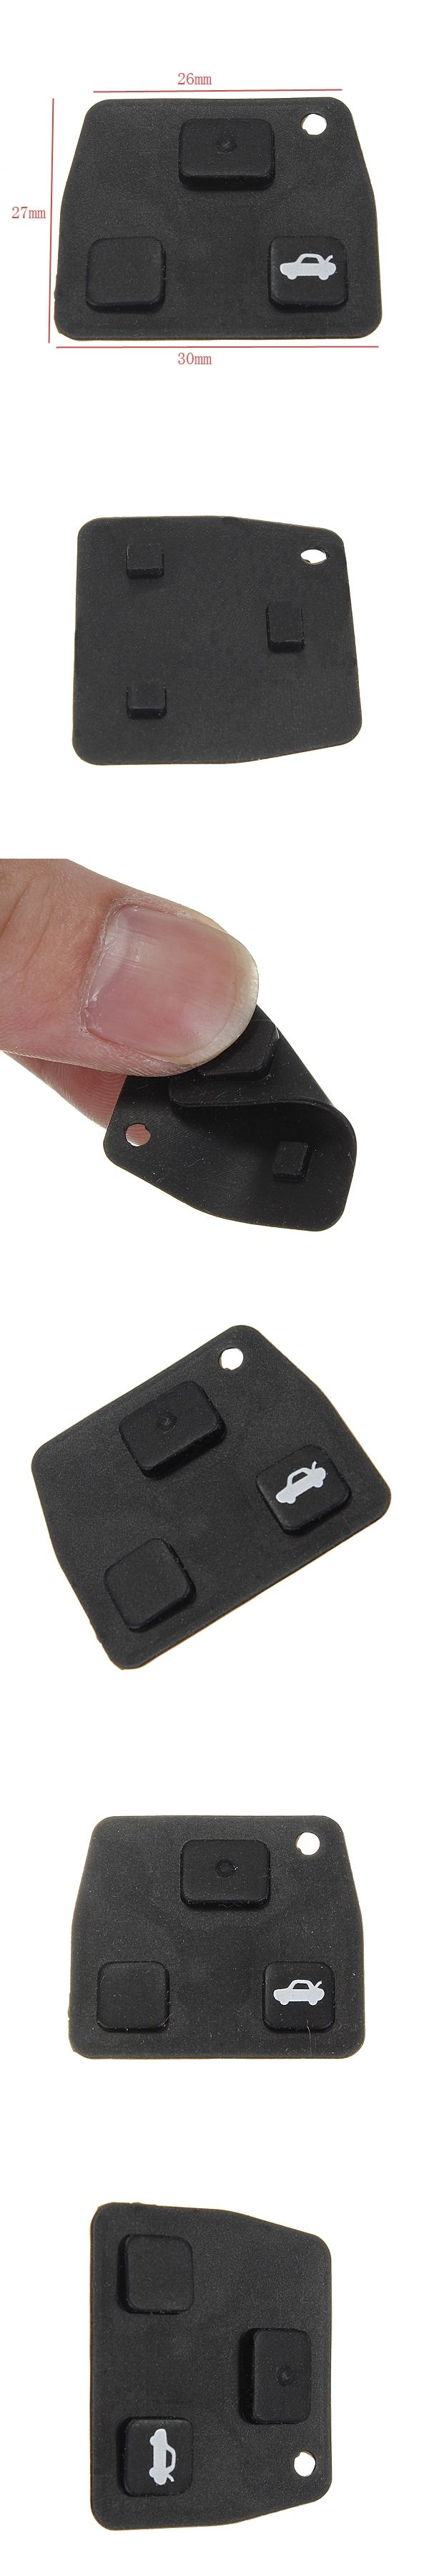 2 3 Button Car Remote Key Fob Rubber Pad For Toyota /Avensis /Corolla /Lexus /Rav4